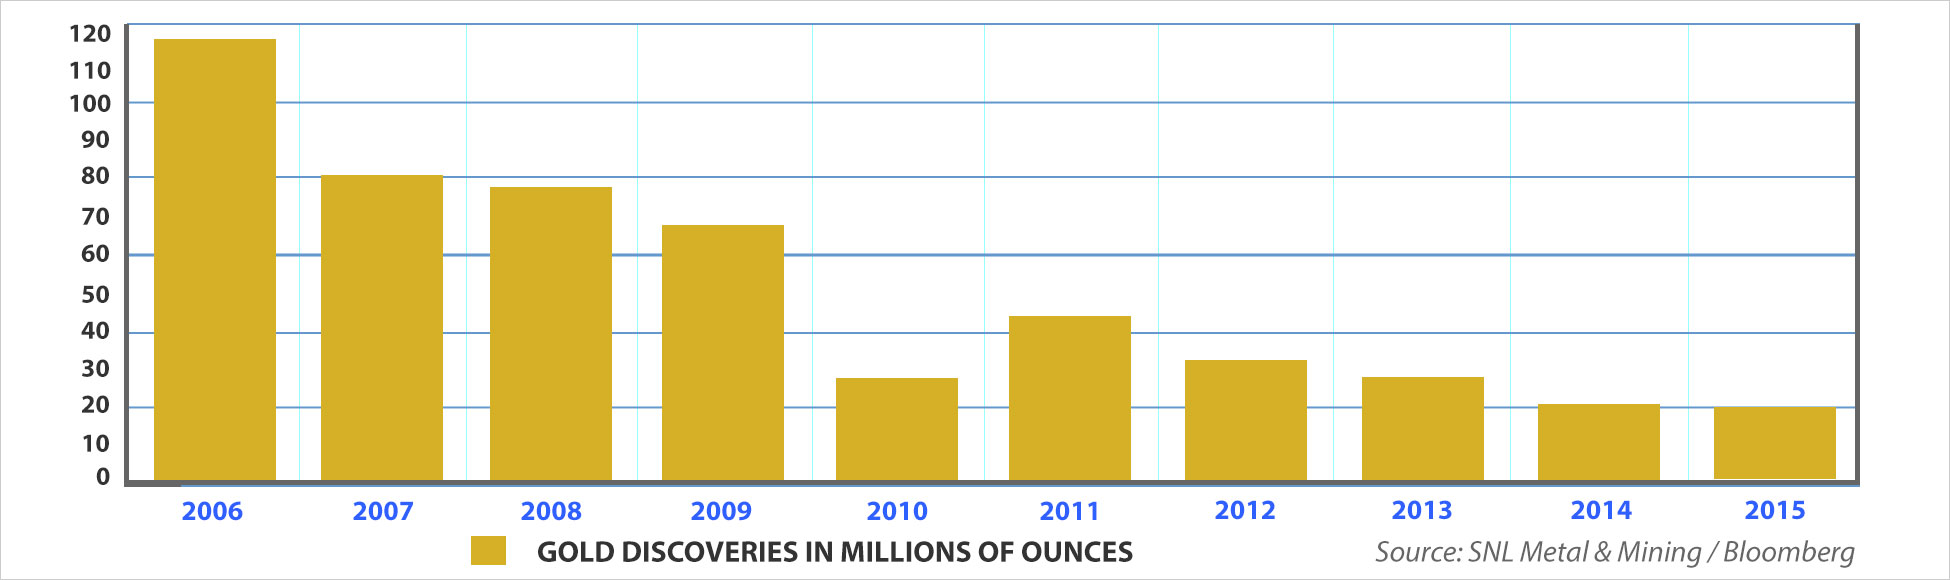 Gold discoveries in millions of ounces